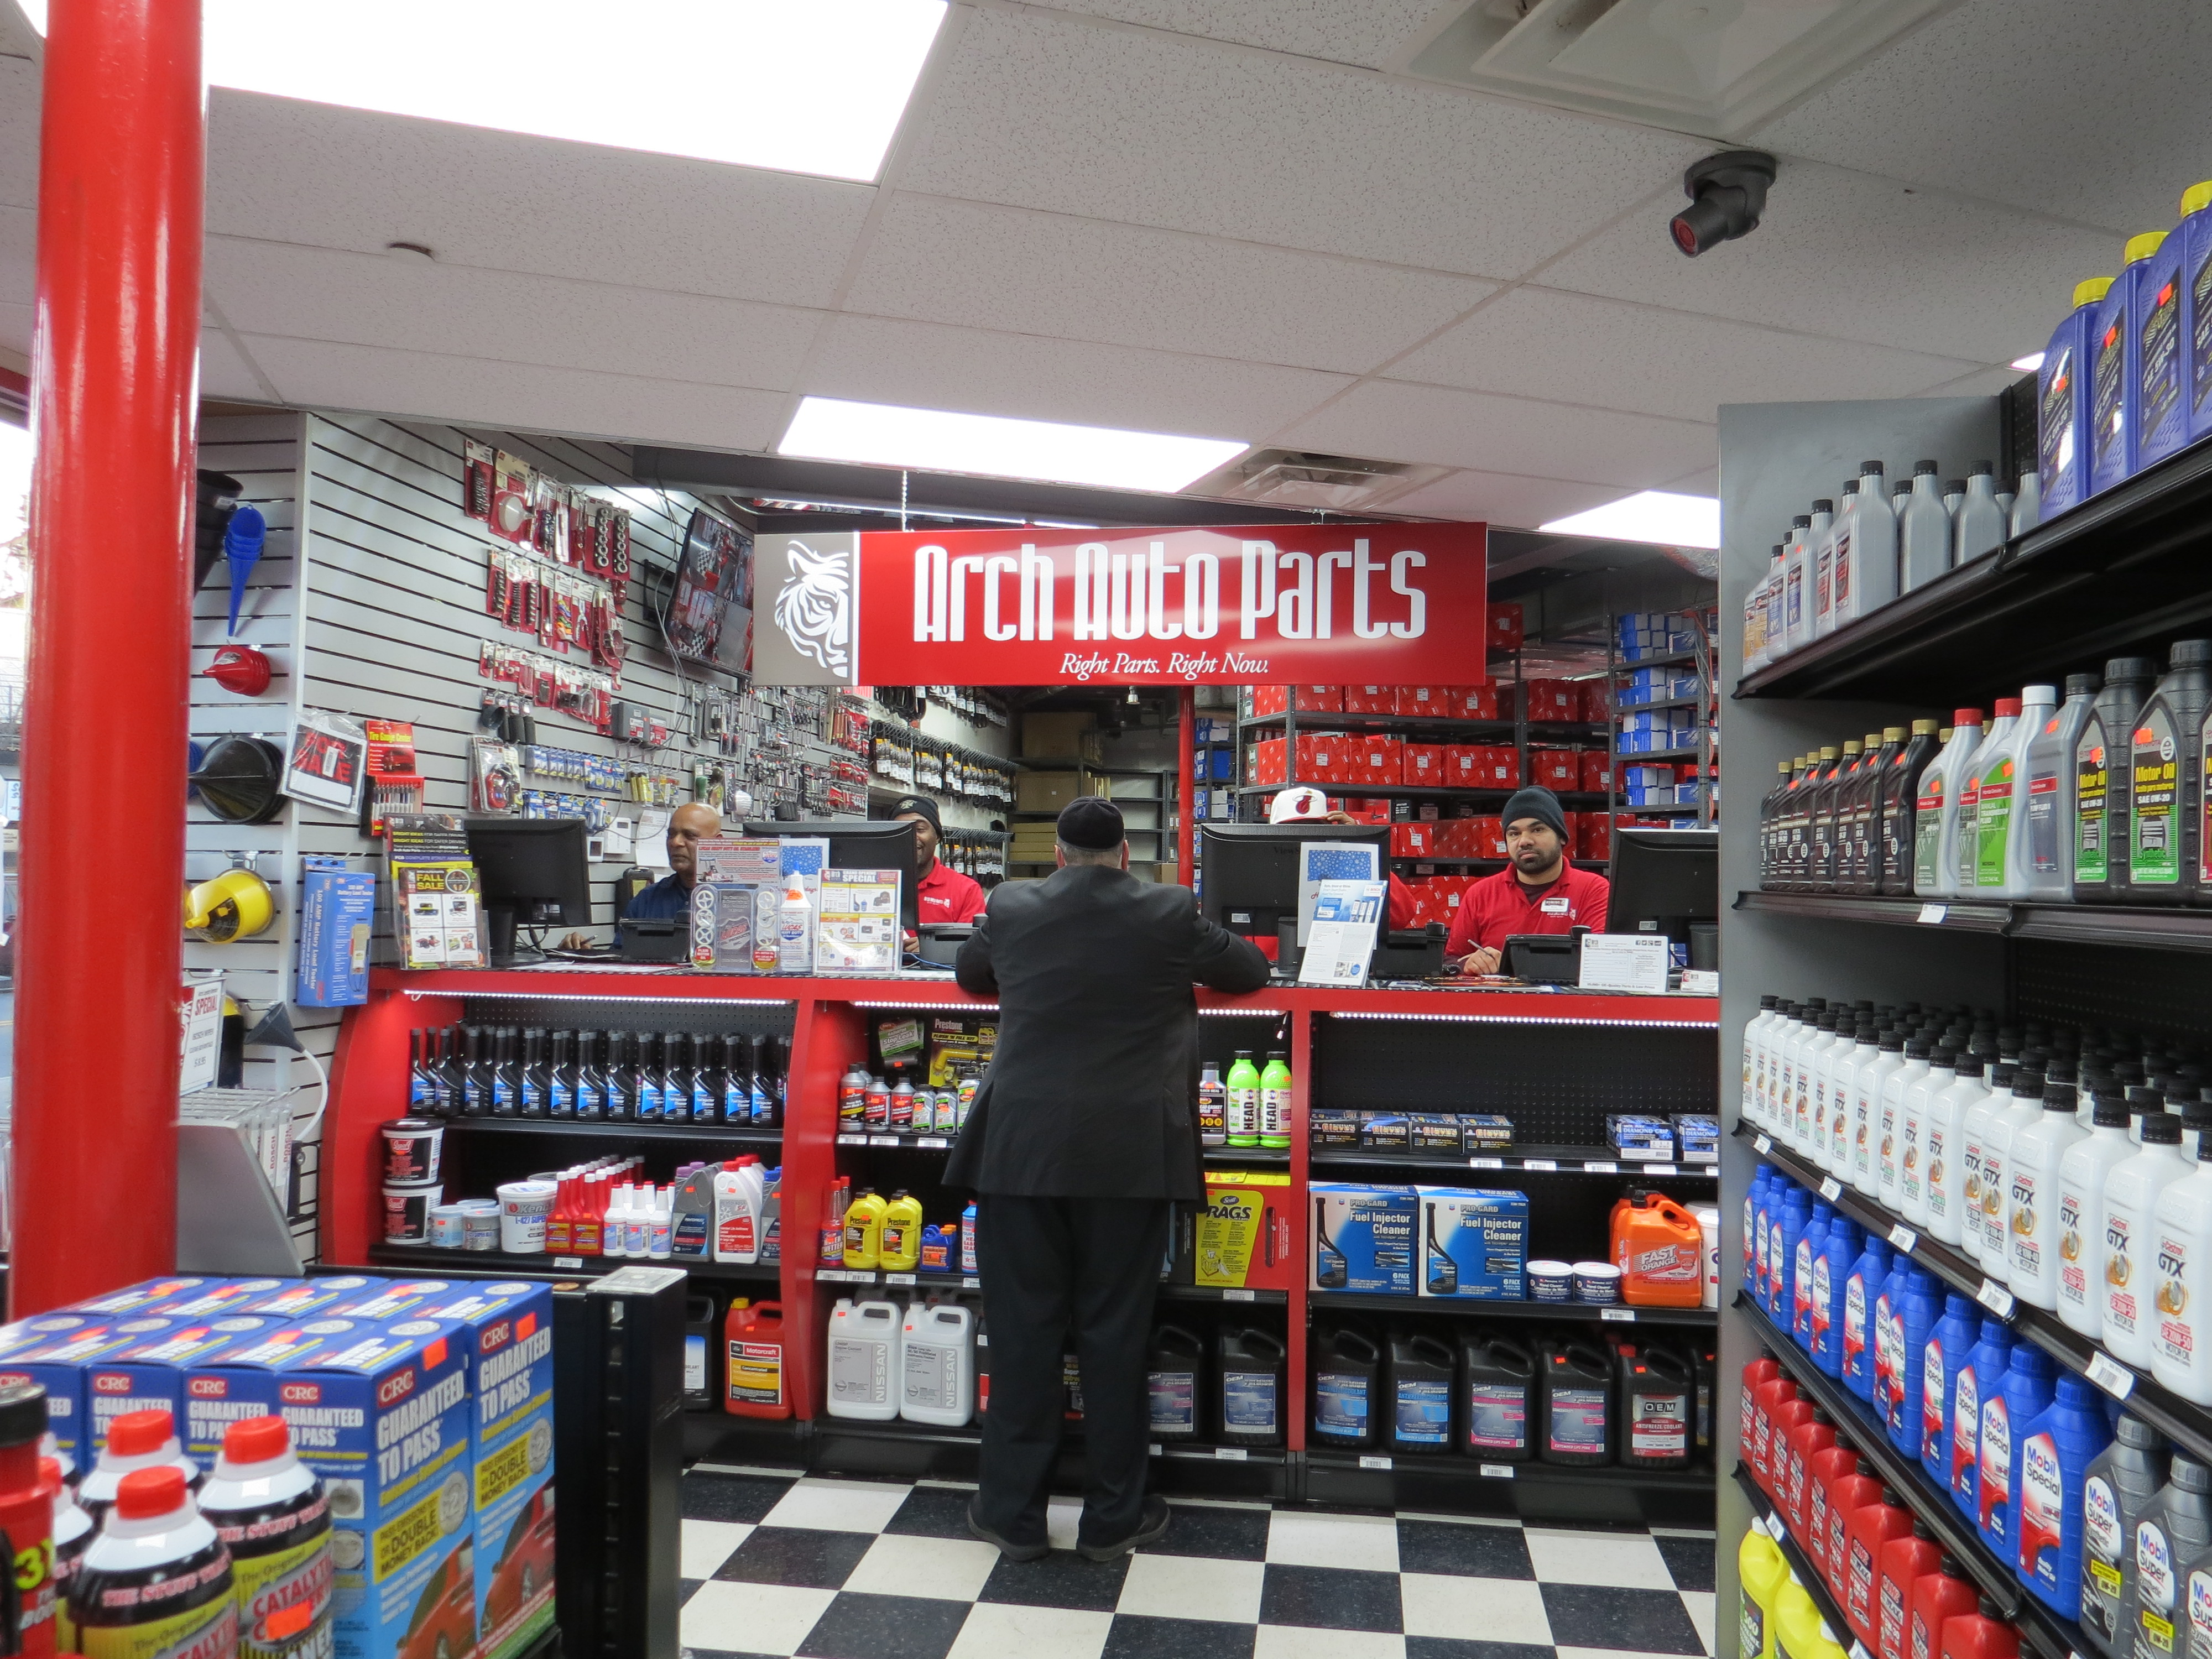 Splendid Arch Auto Parts Opens Th Ny Store Kew Gardens Shoppers Save   With Great Arch Auto Parts Opens With Highquality Discount Auto Parts At Corner Of  Metropolitan Ave And Th Street Kew Gardens Ny With Adorable Prison Garden Also Reclaimed Brick Garden Walls In Addition Waterperry Gardens Oxford And Paving Stone Garden Designs As Well As Vegetable Garden Planting Guide Additionally Sta Travel Covent Garden From Prwebcom With   Great Arch Auto Parts Opens Th Ny Store Kew Gardens Shoppers Save   With Adorable Arch Auto Parts Opens With Highquality Discount Auto Parts At Corner Of  Metropolitan Ave And Th Street Kew Gardens Ny And Splendid Prison Garden Also Reclaimed Brick Garden Walls In Addition Waterperry Gardens Oxford From Prwebcom